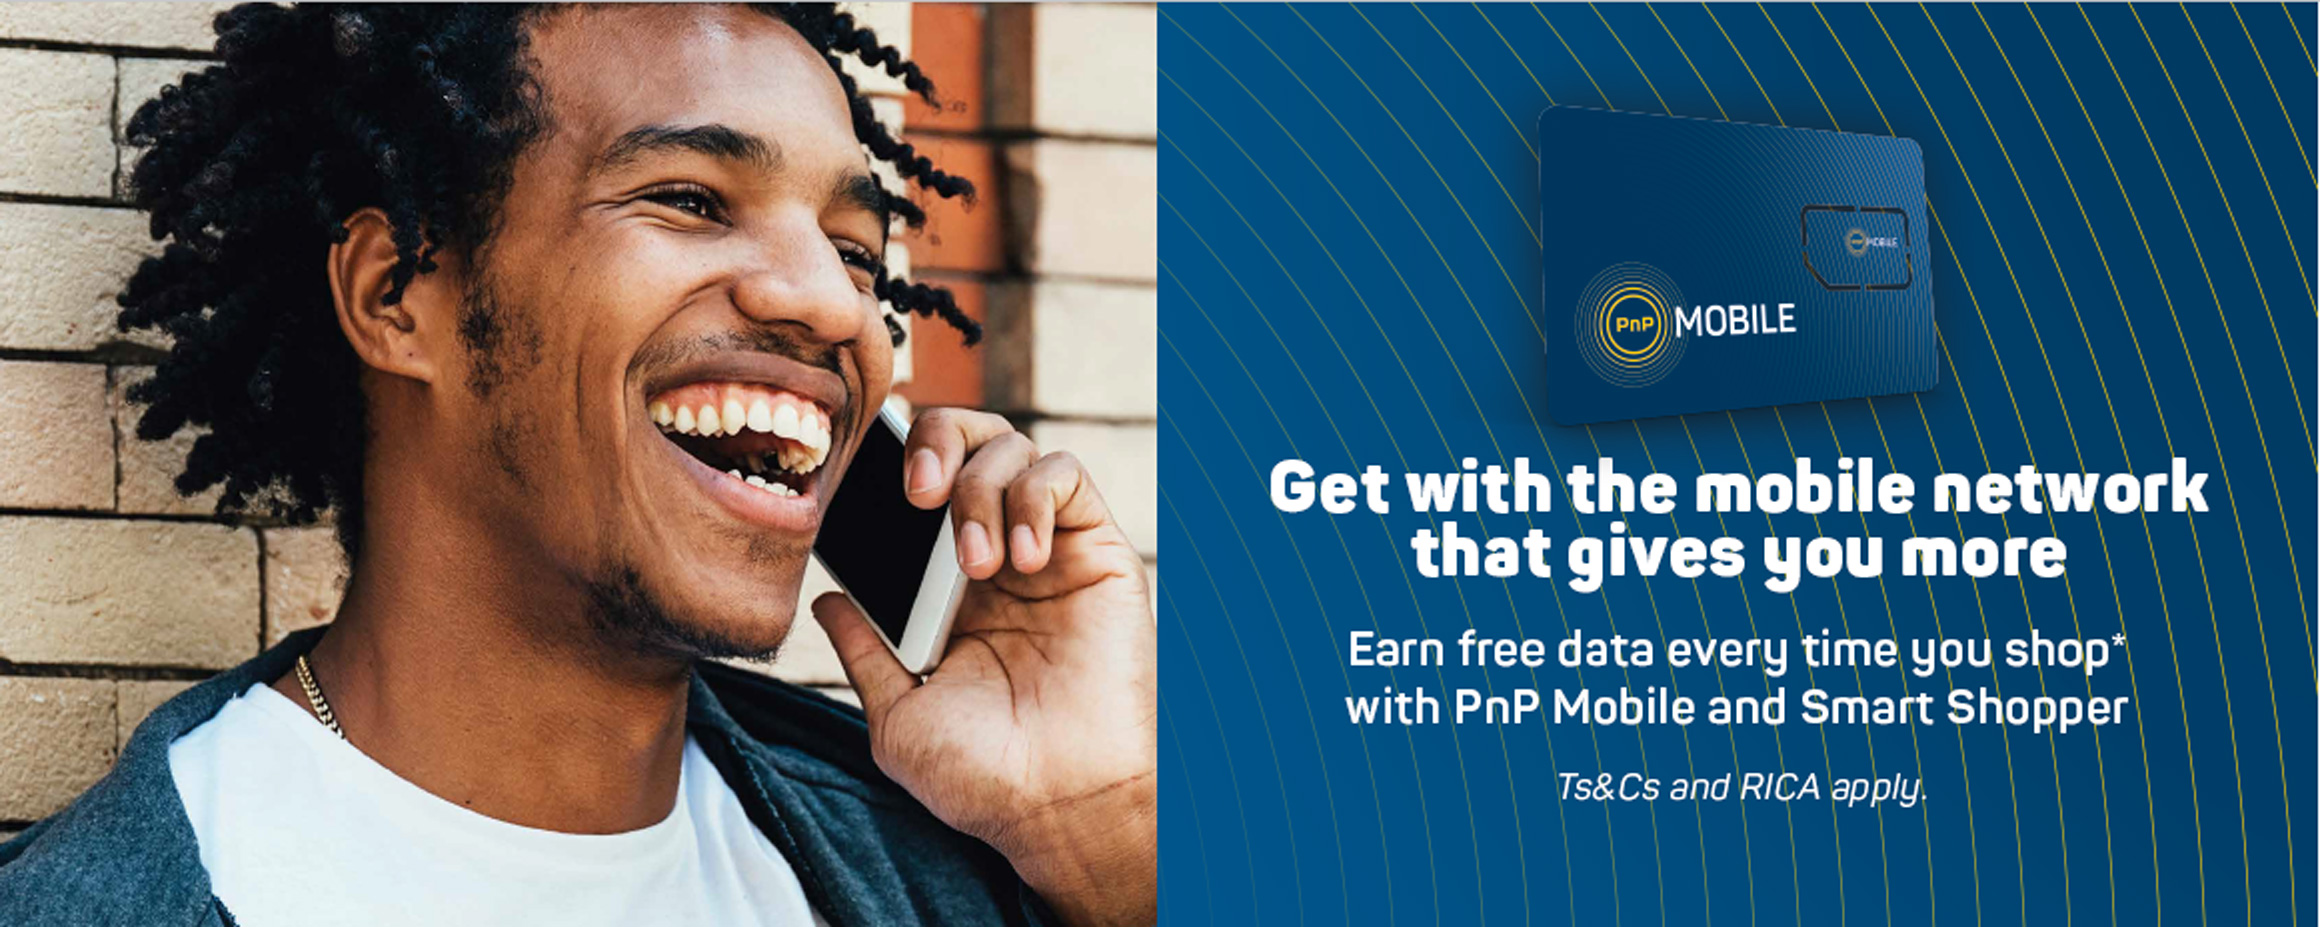 Get with the mobile network that gives you more. Earn free data everytime you shop with PnP Mobile and Smart Shopper.